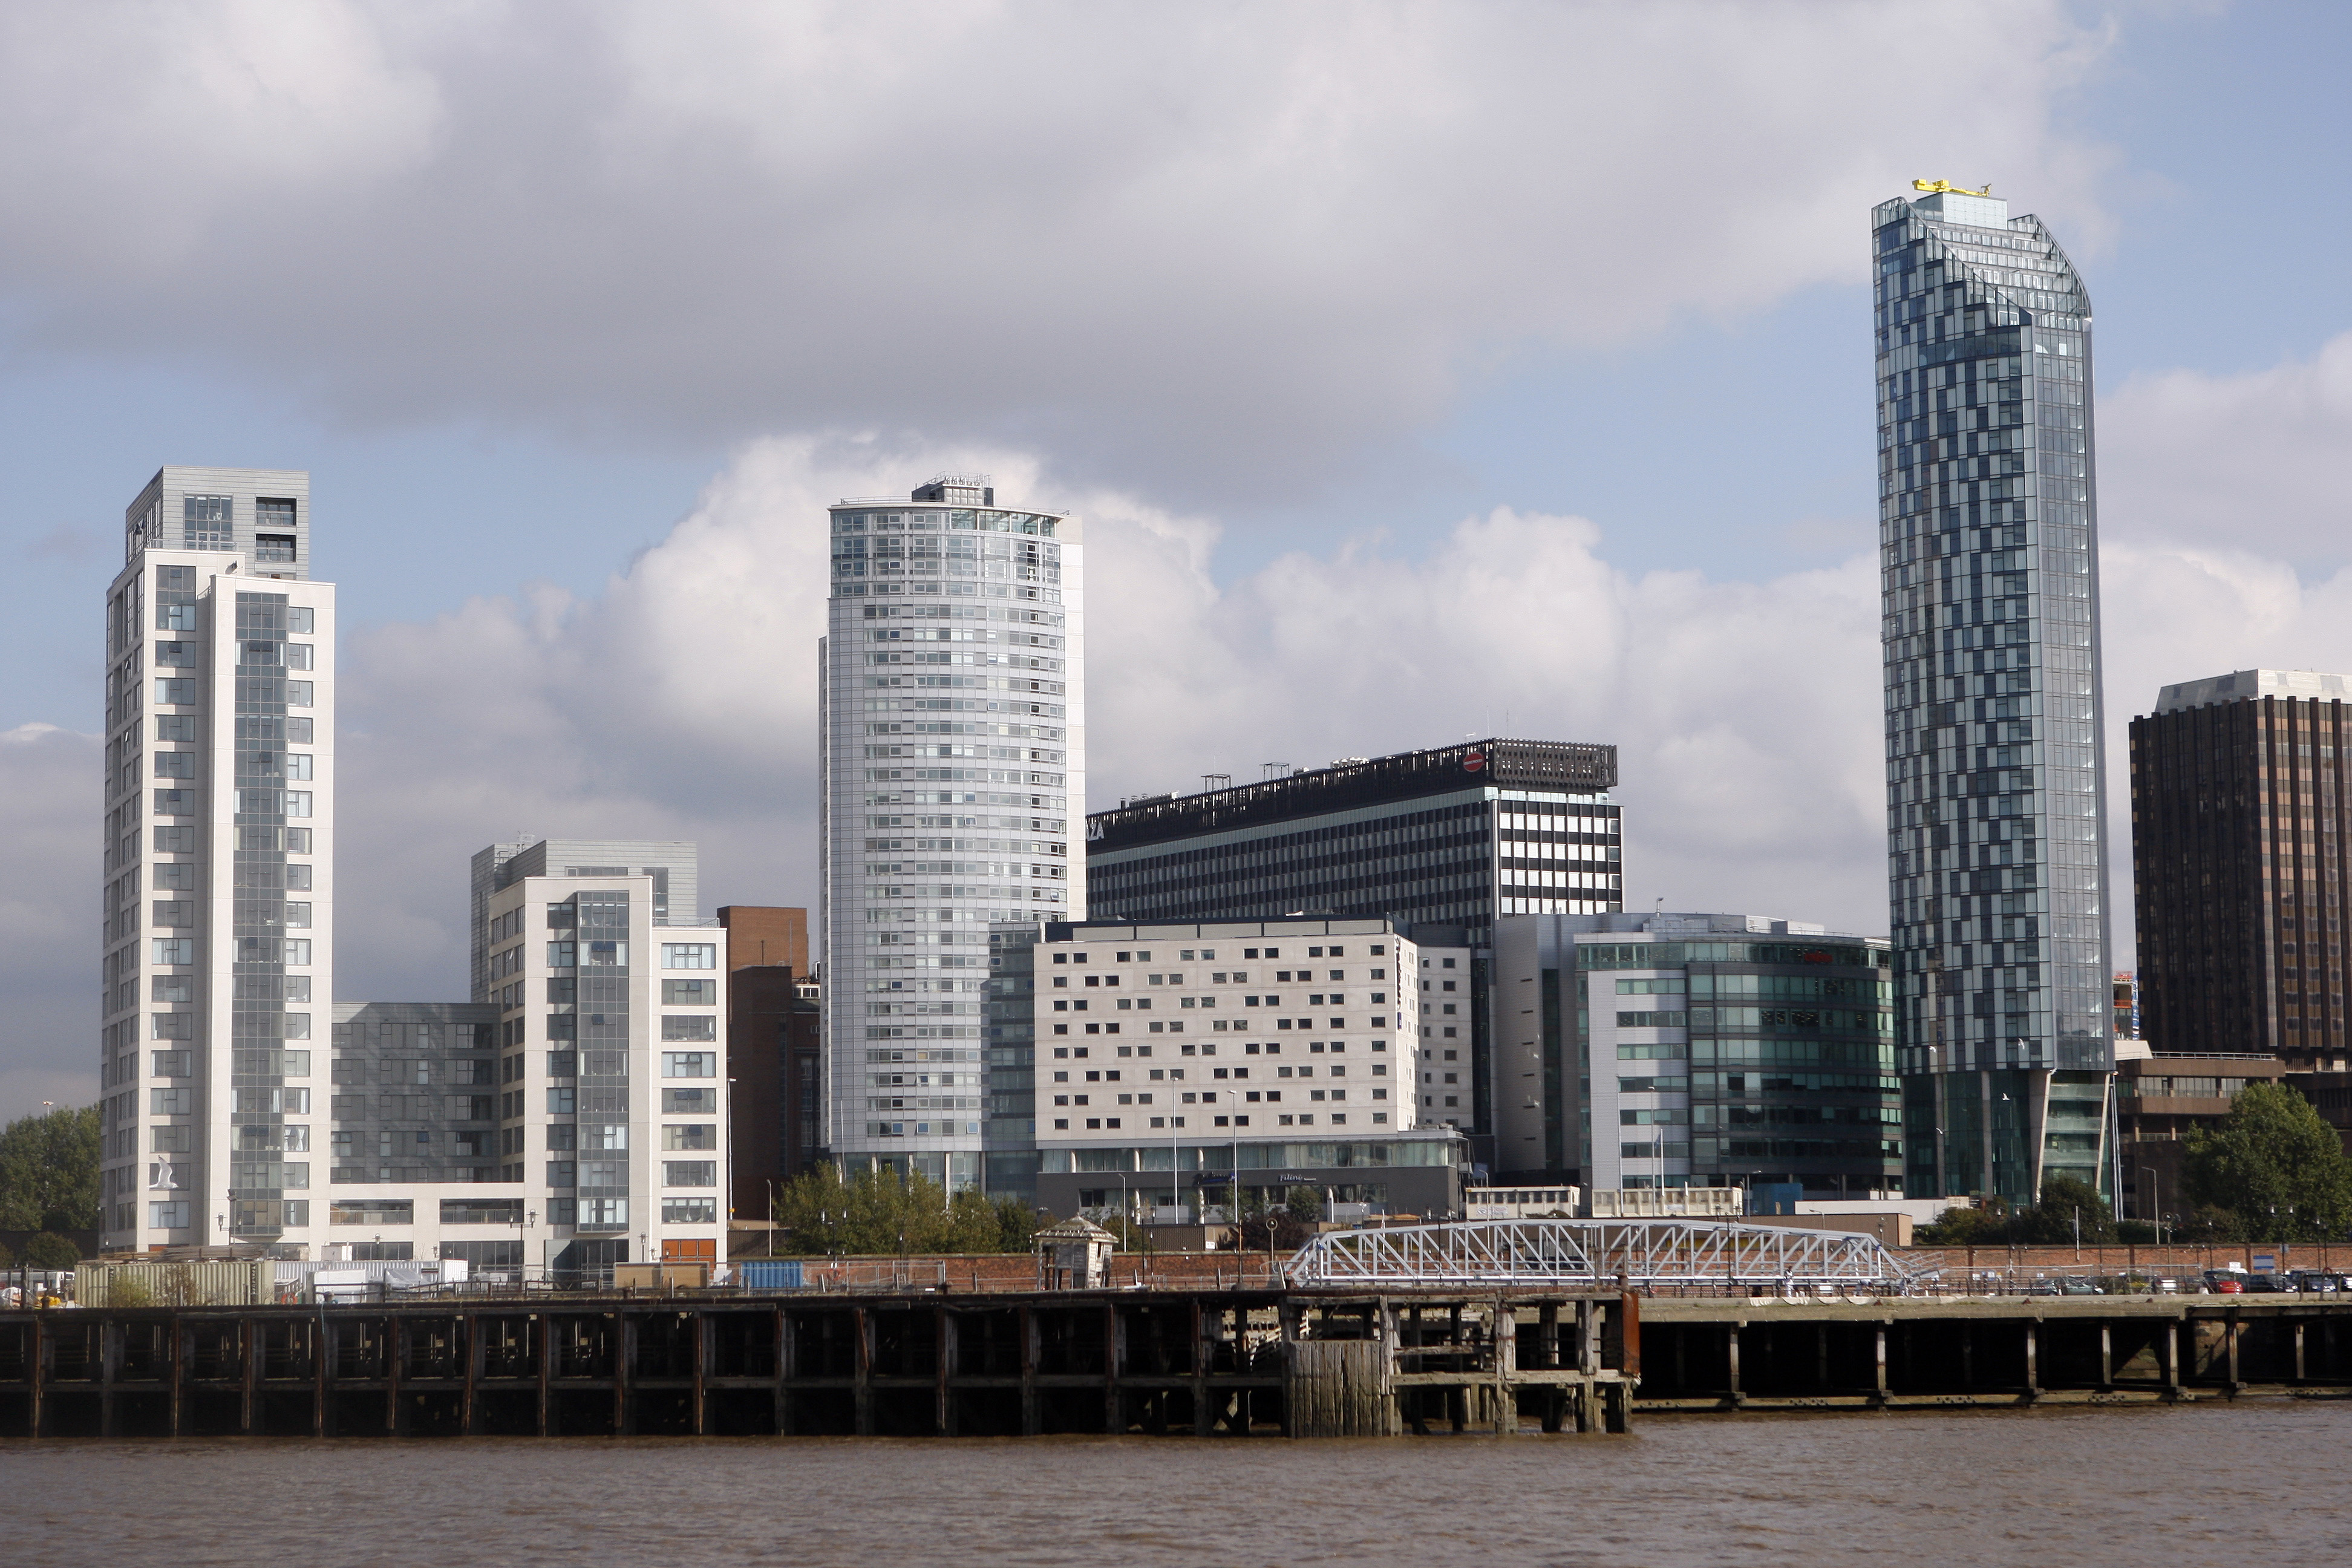 The Wealth at Work group secures new investment bringing opportunities to Liverpool.